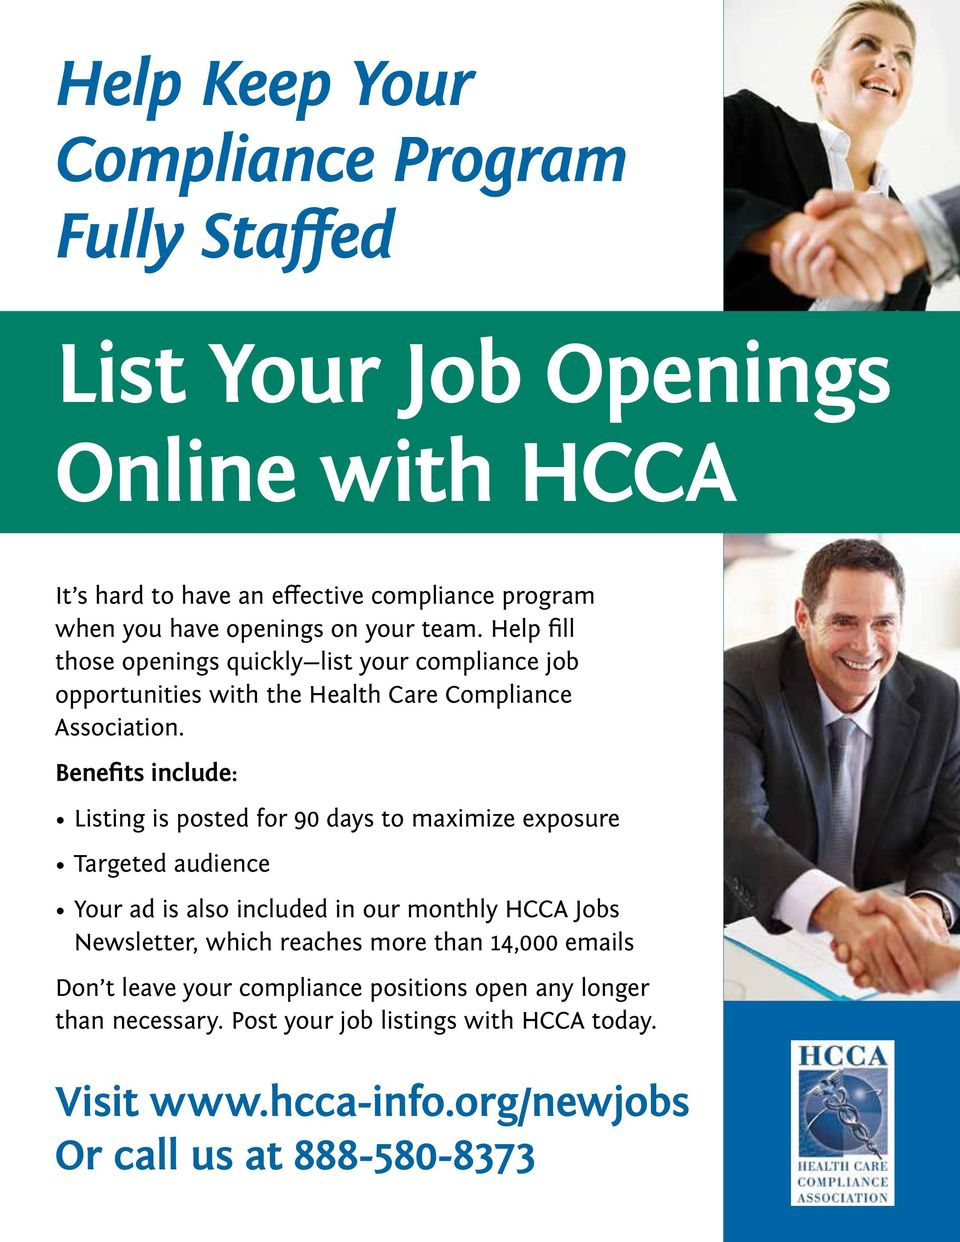 Benefits include: Listing is posted for 90 days to maximize exposure Targeted audience Your ad is also included in our monthly HCCA Jobs Newsletter, which